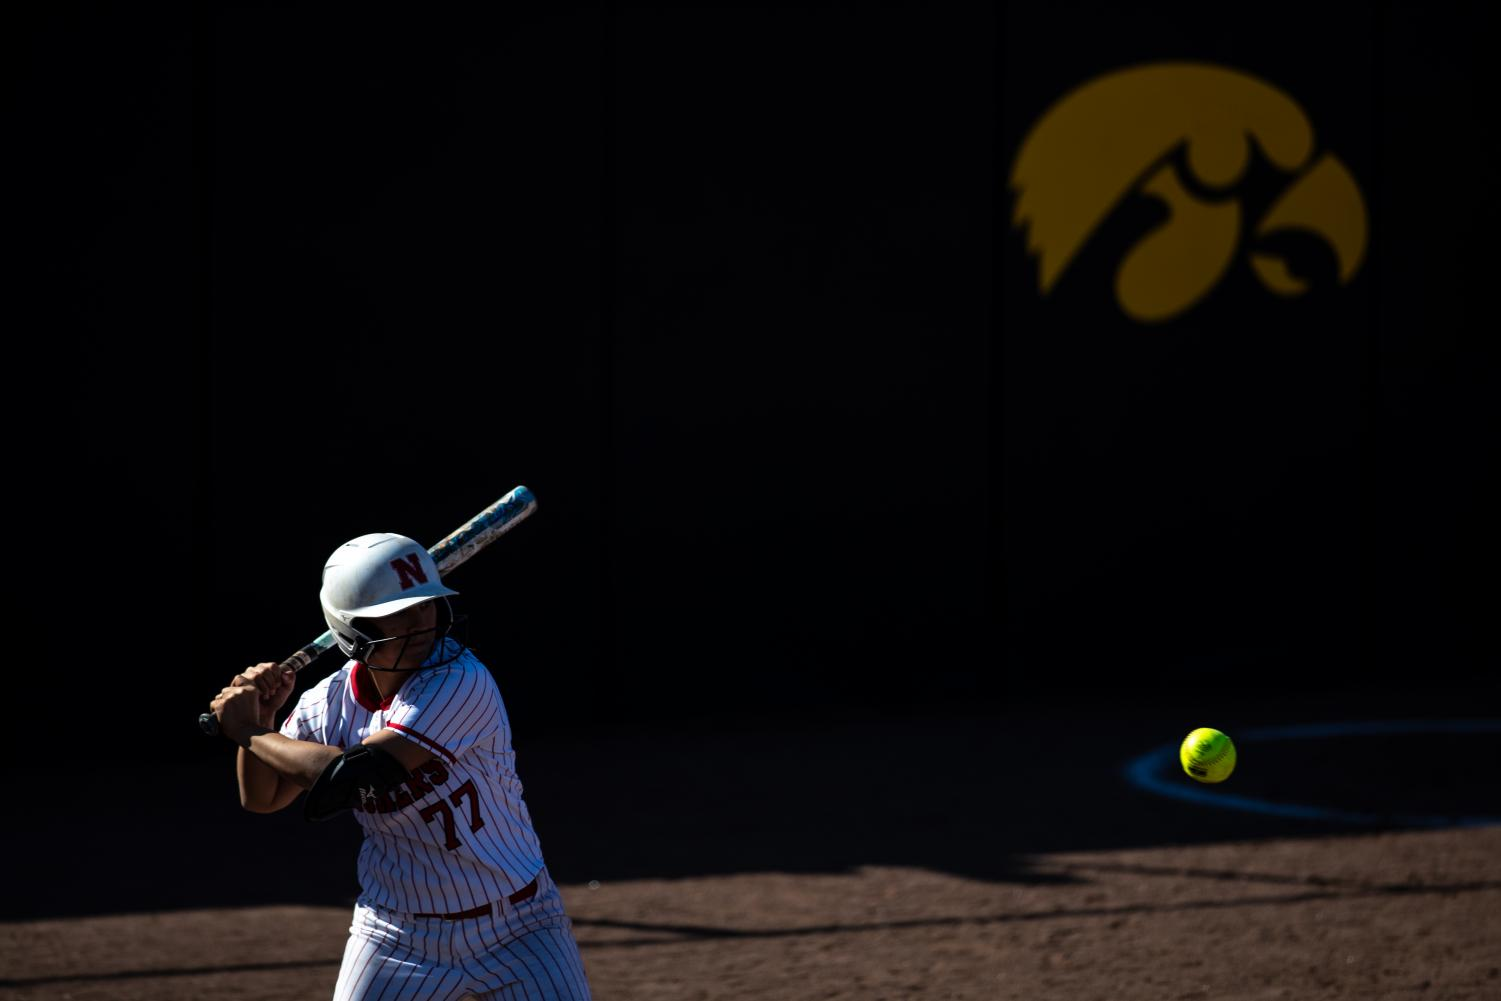 Nebraska+infielder+Samantha+Owen++eyes+the+ball+during+the+game+against+Iowa+at+the+Bob+Pearl+Softball+Field+on+Wednesday%2C+April+24%2C+2019.+The+Hawkeyes+were+defeated+7-5+by+the+Huskers.+